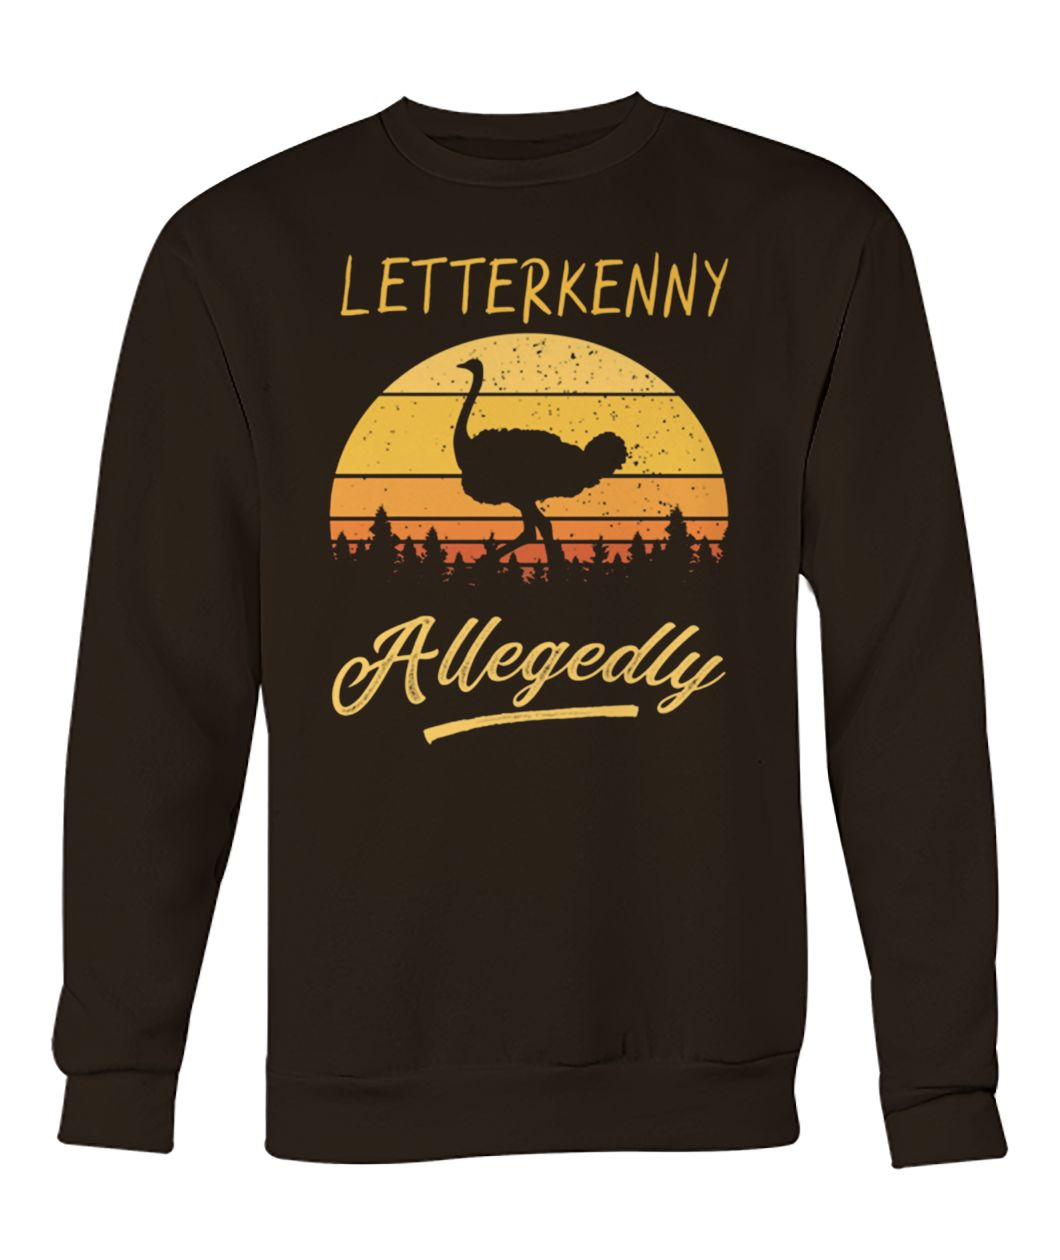 Letterkenny allegedly ostrich vintage crew neck sweatshirt